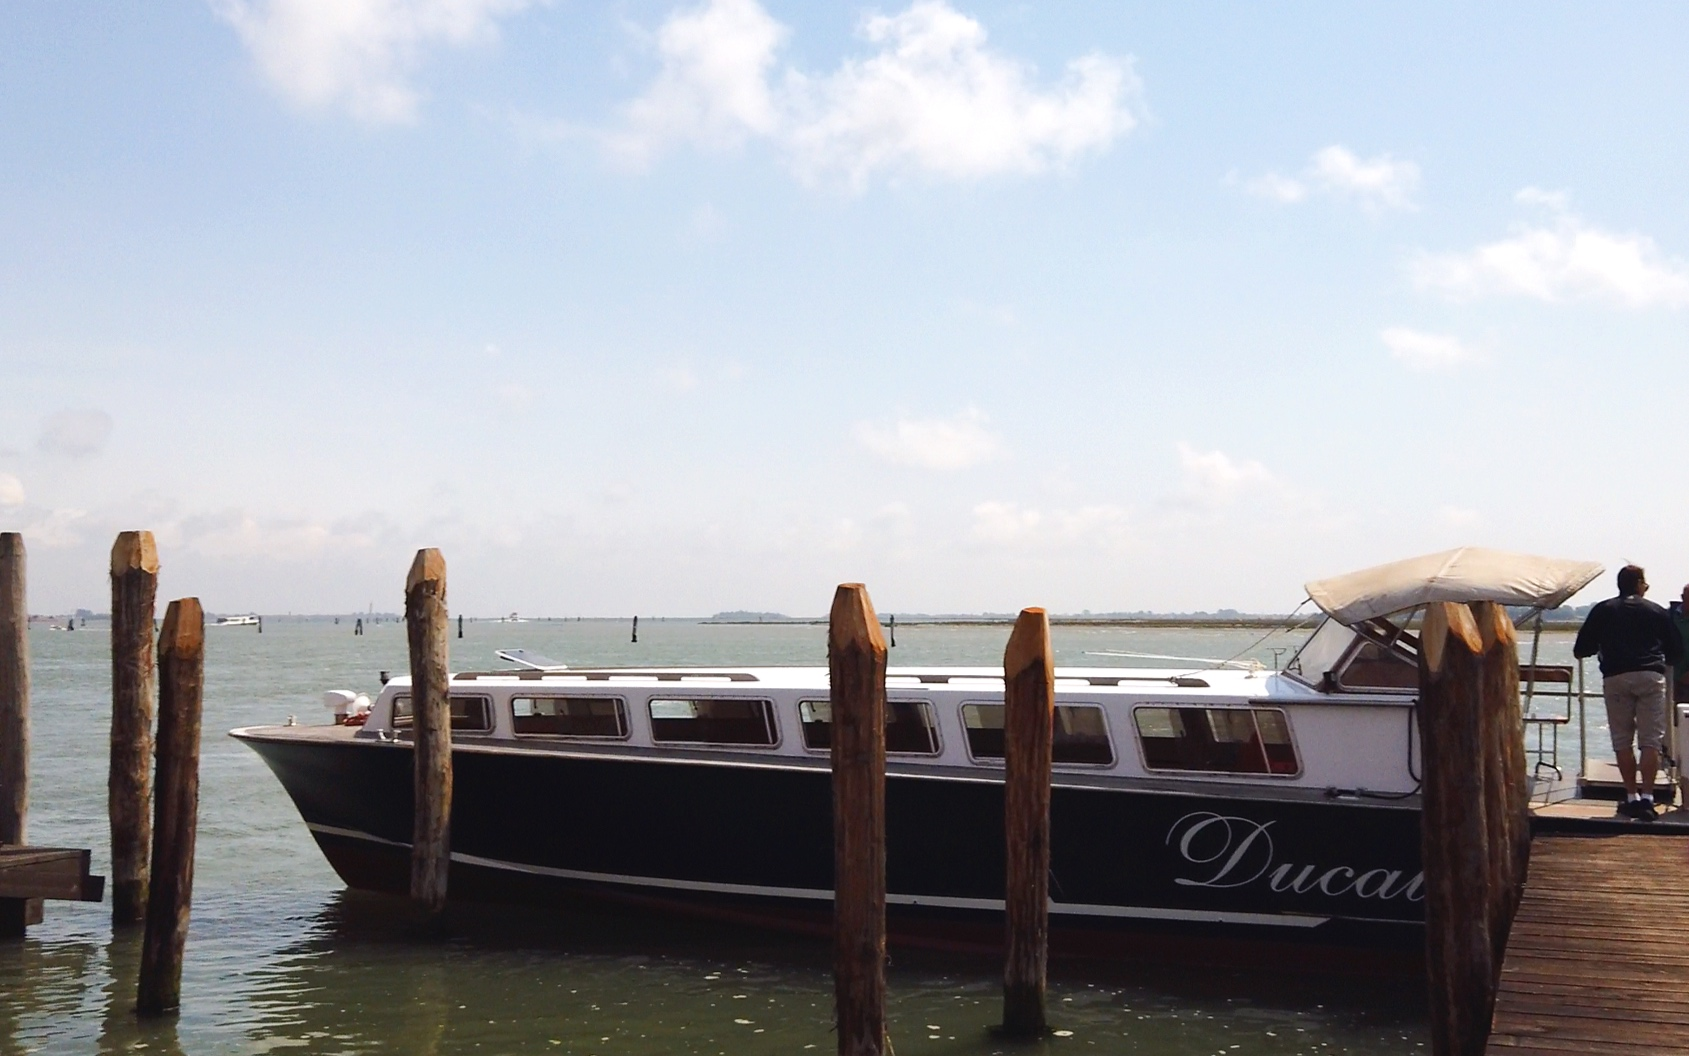 Our Venetian water taxi.